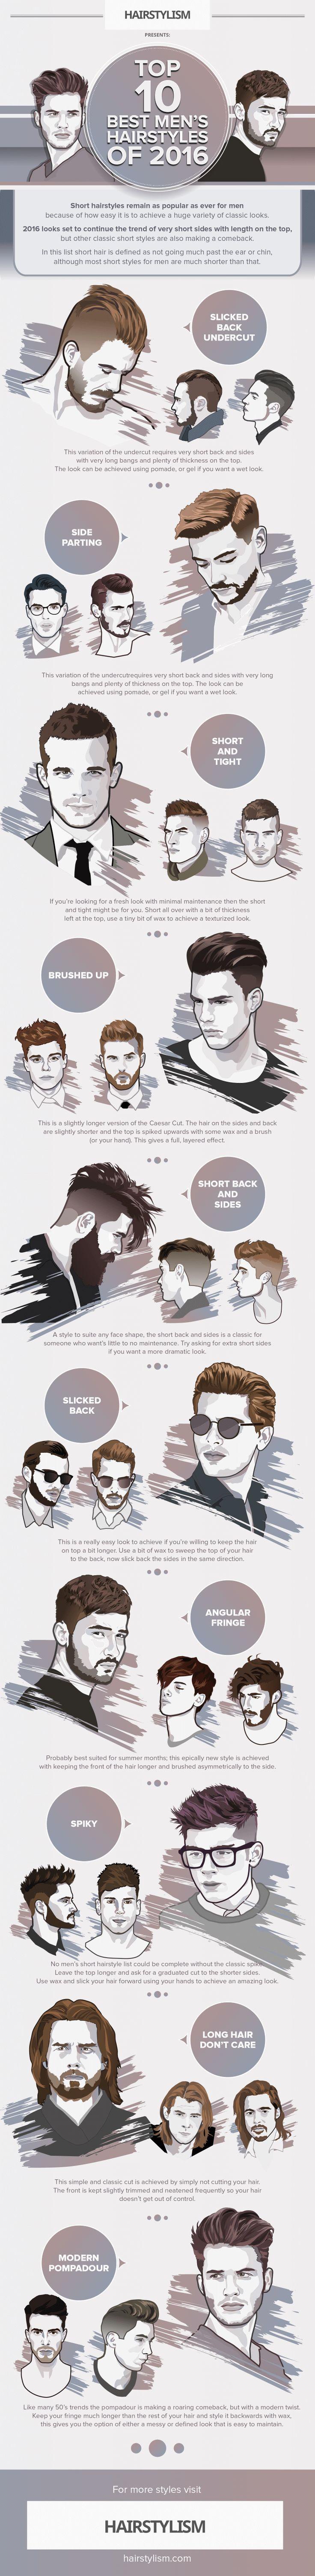 Swear nowadays any guy from 16-19 has the exact same hairstyle  #RePin by AT Social Media Marketing - Pinterest Marketing Specialists ATSocialMedia.co.uk